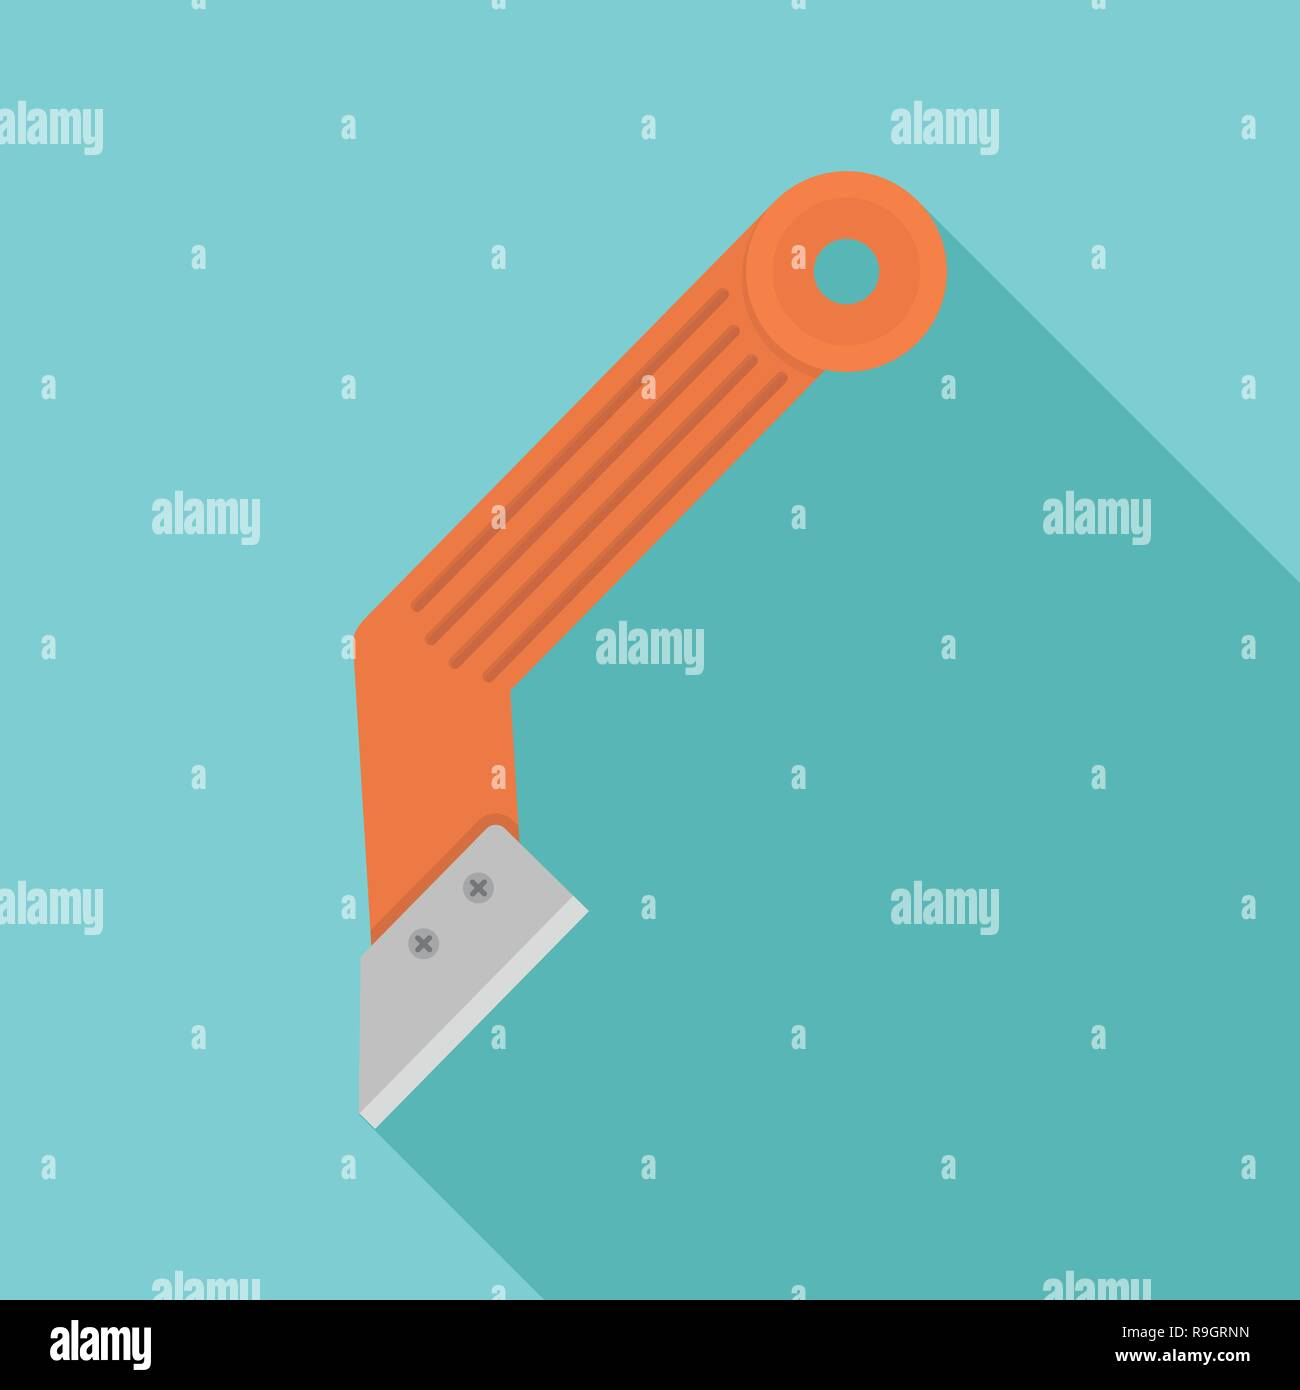 Construction knife icon. Flat illustration of construction knife vector icon for web design - Stock Image